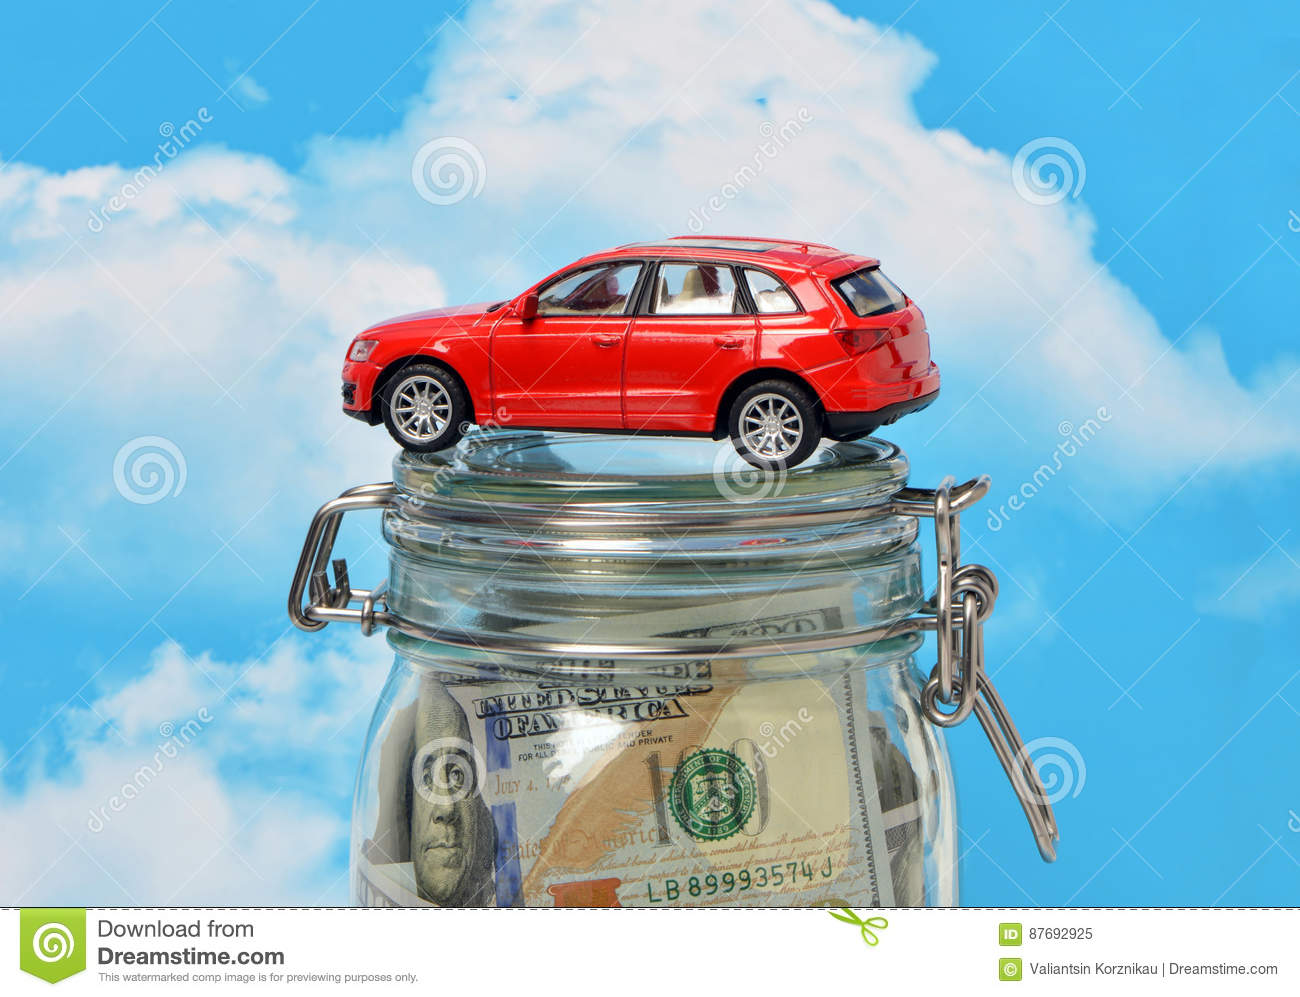 The loan to buy a car